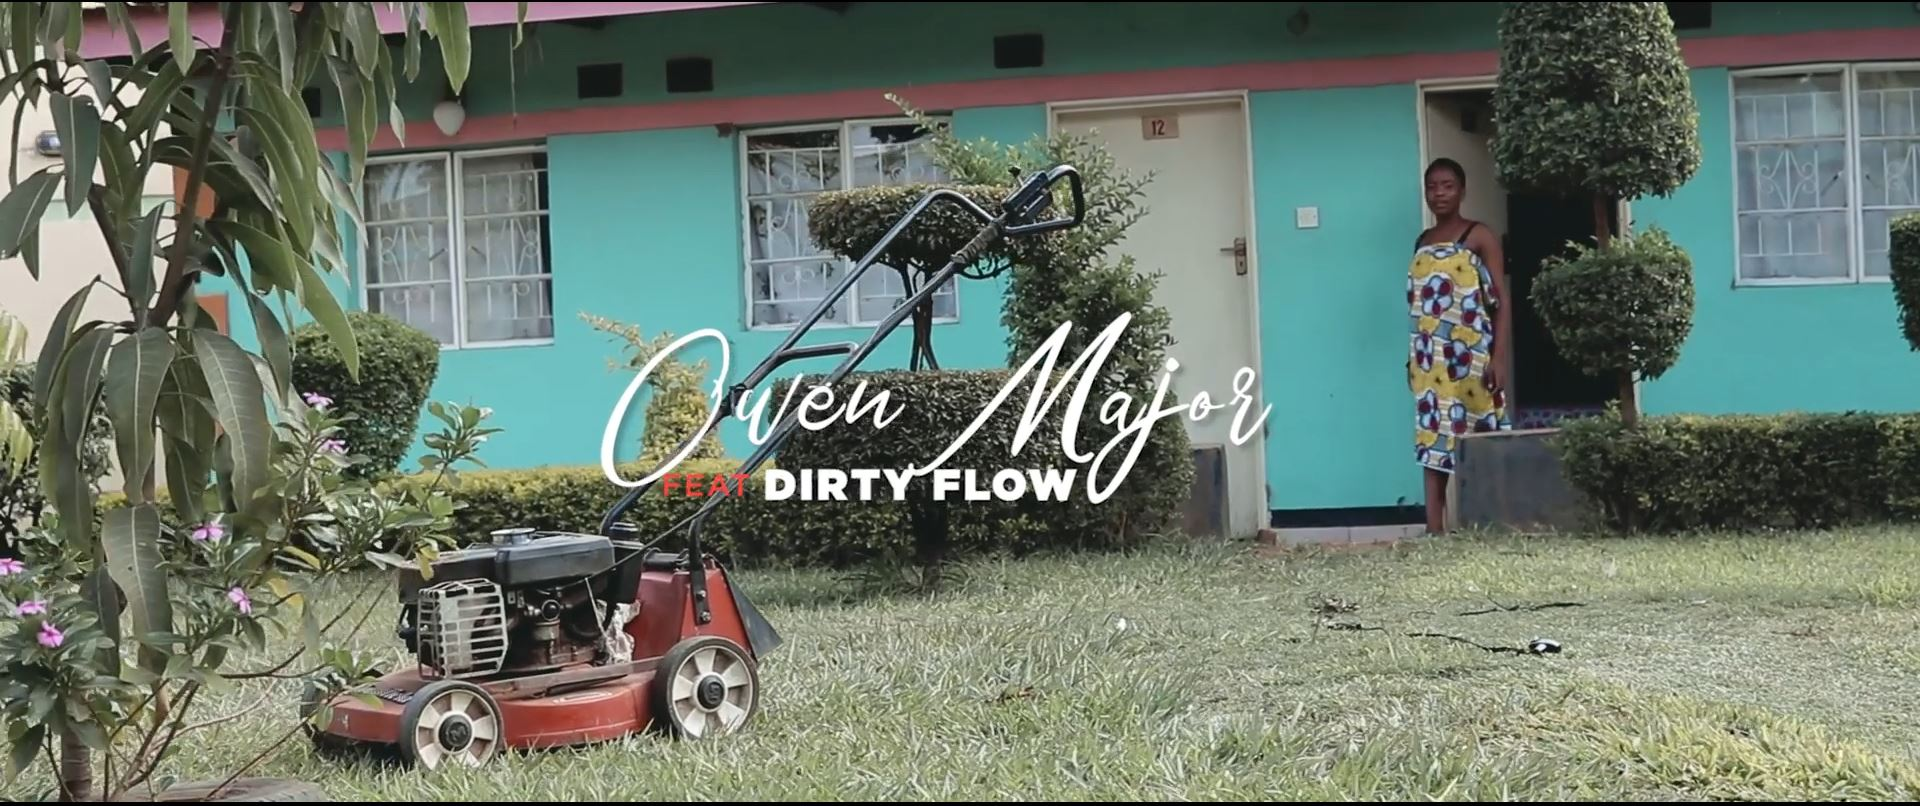 Owen Major-Mwana Wa Neba ft Dirty Flow (Prod. King Duda & Kauka Beats)